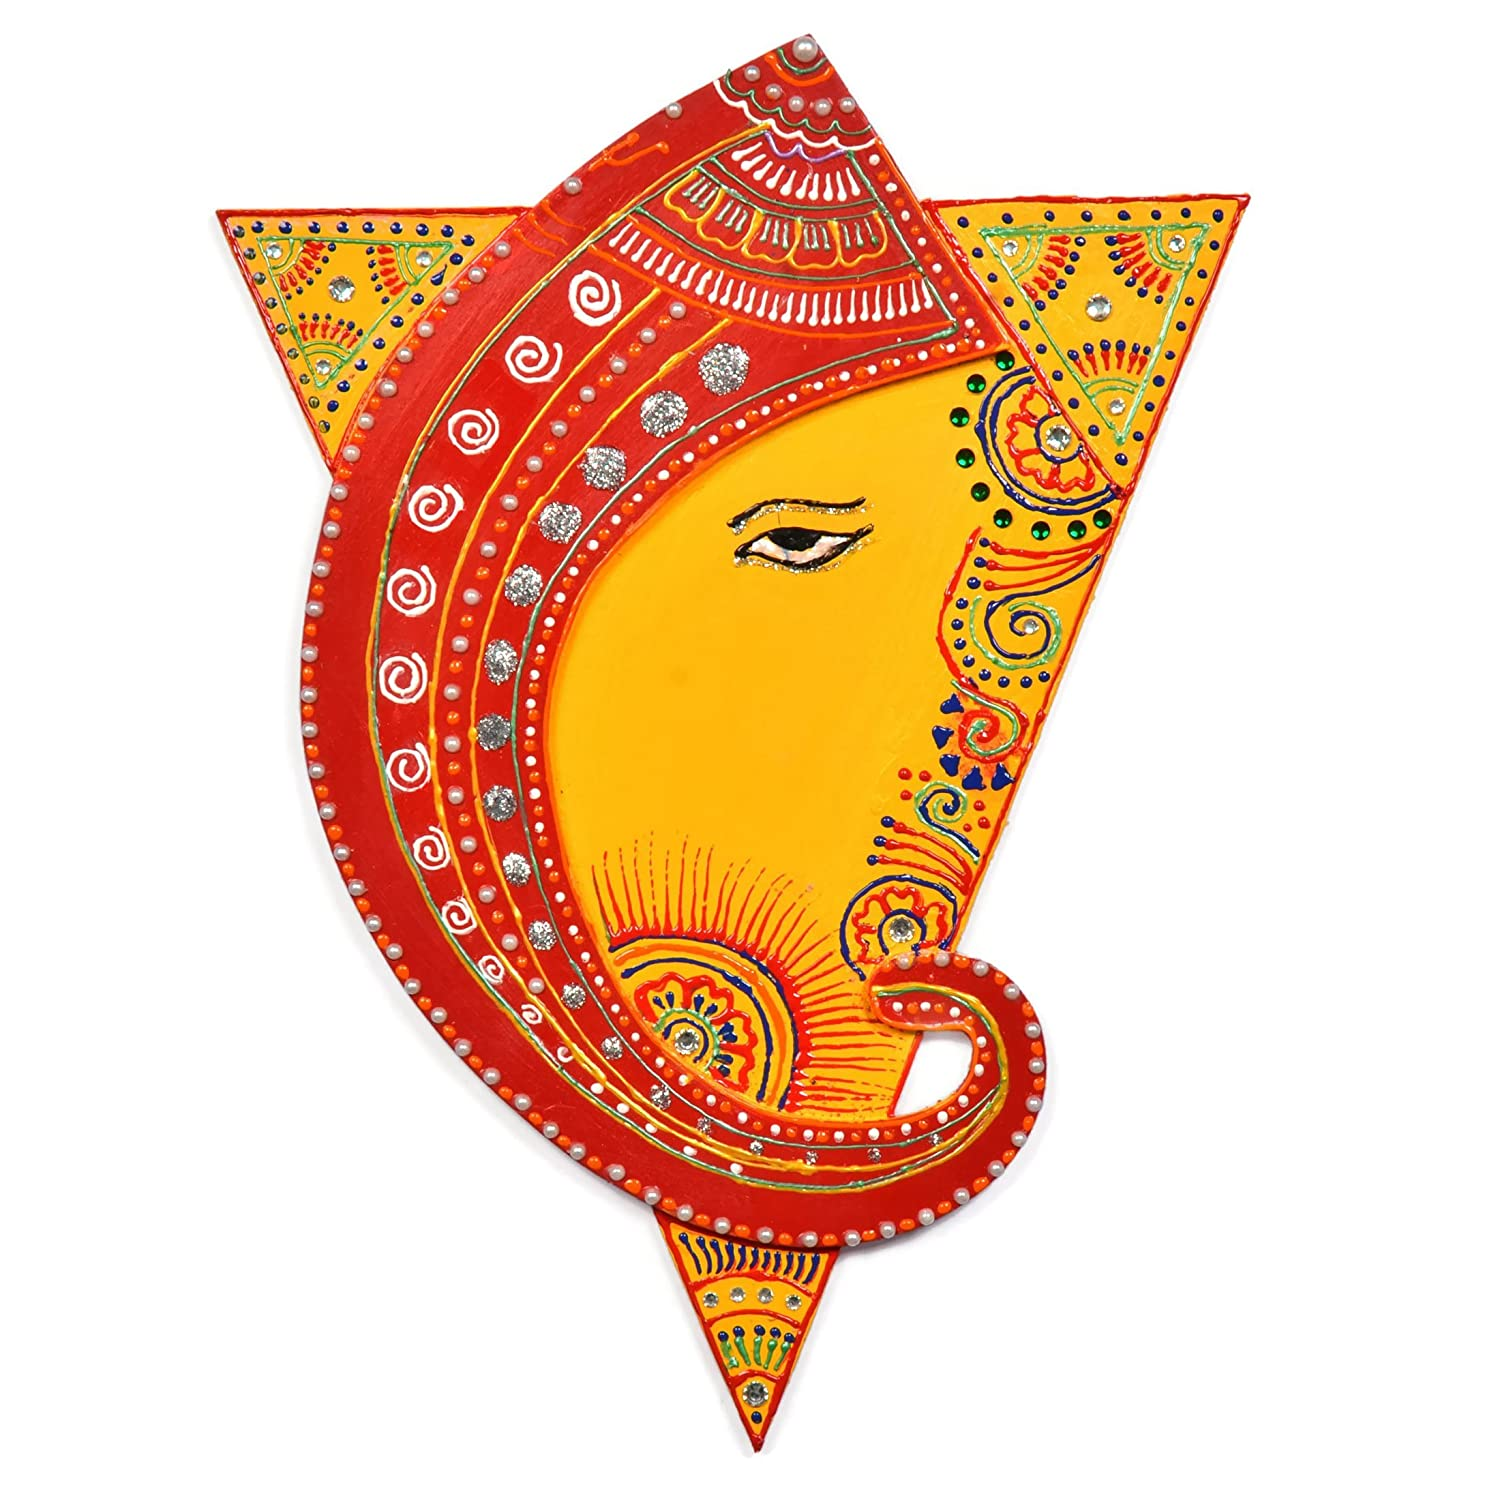 Amazon.com: Indian Decor Wall Hanging of Ganesh with Shakti Triangle ...